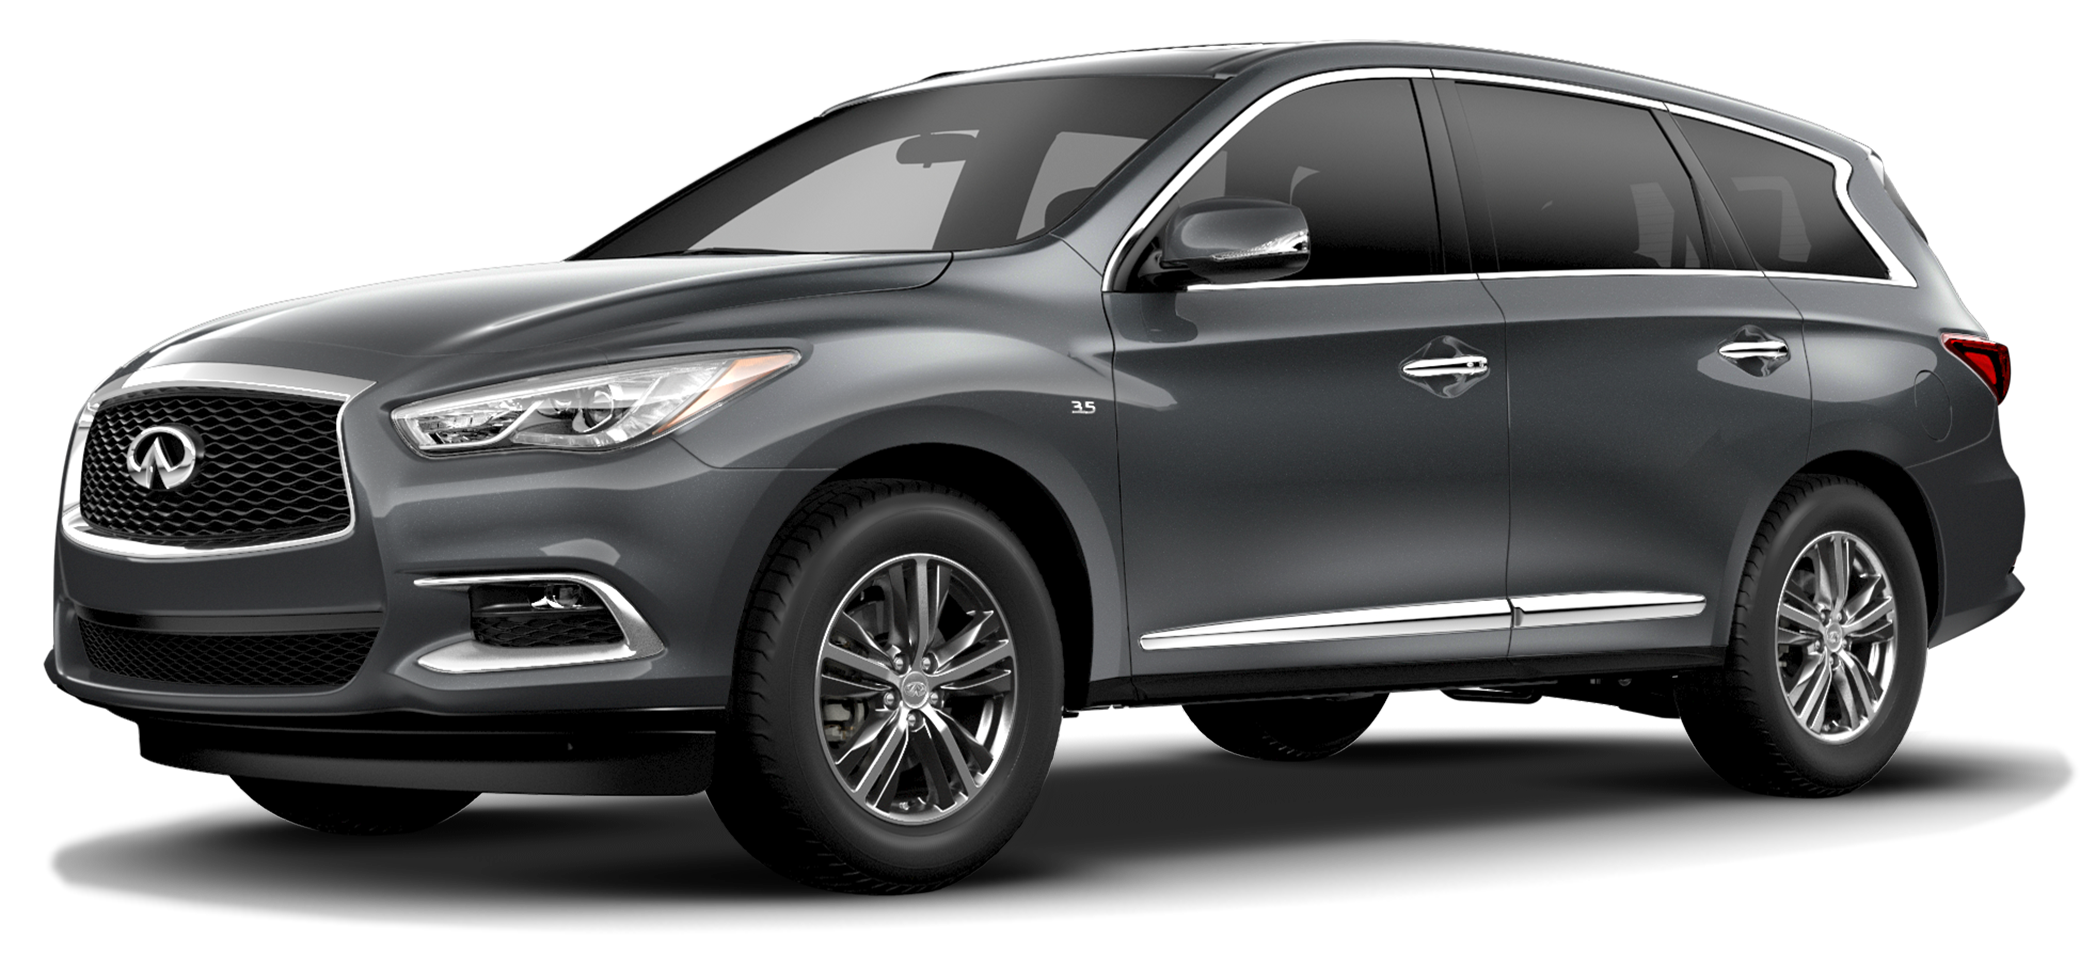 2019 INFINITI QX60 Incentives Specials & fers in Oklahoma City OK